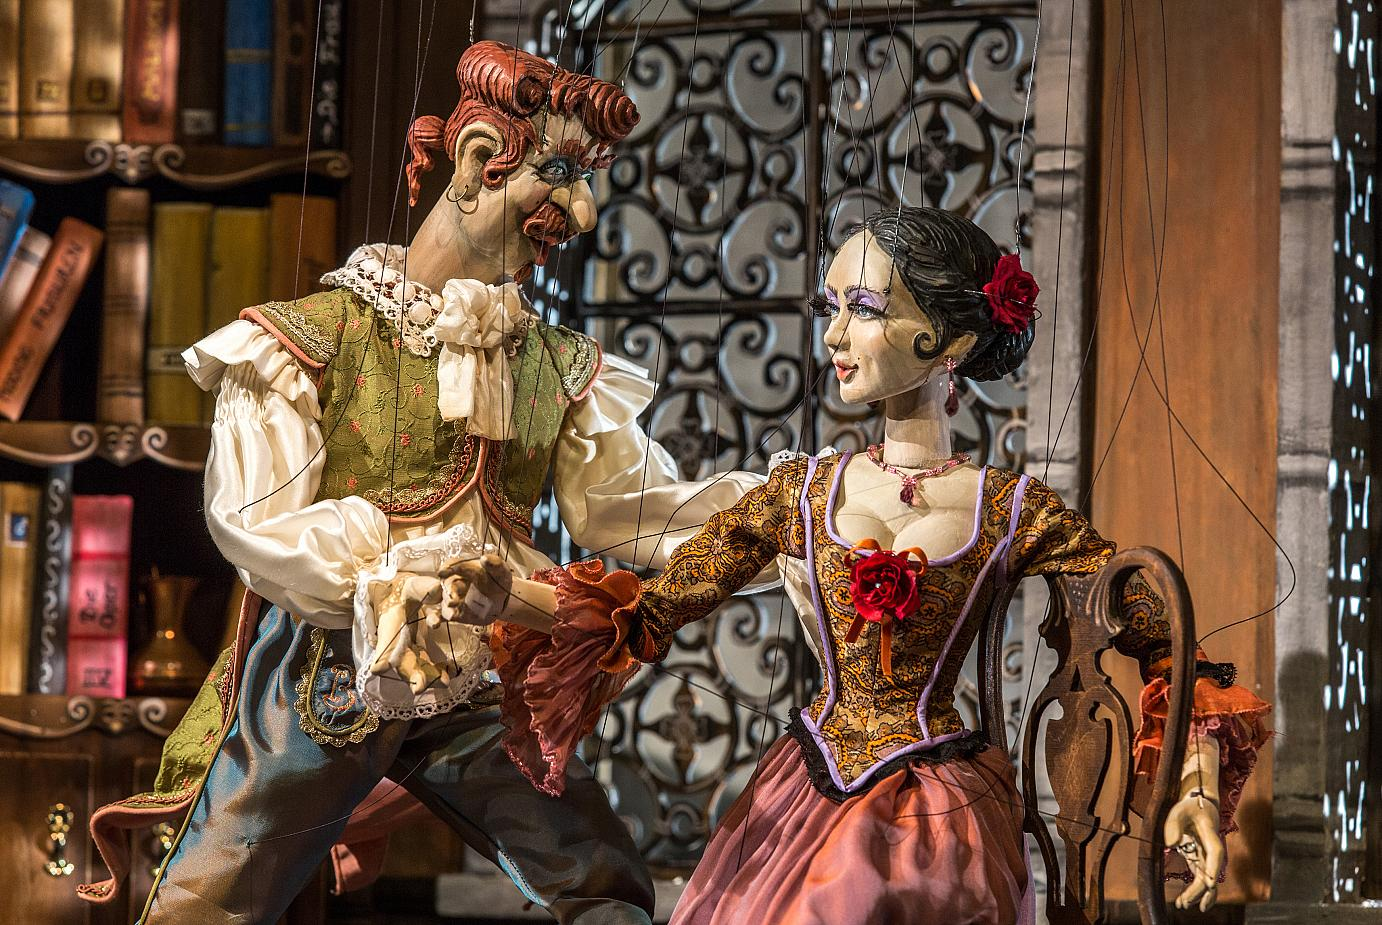 A scene from the Barber from Seville at the Lindau Marionette Opera